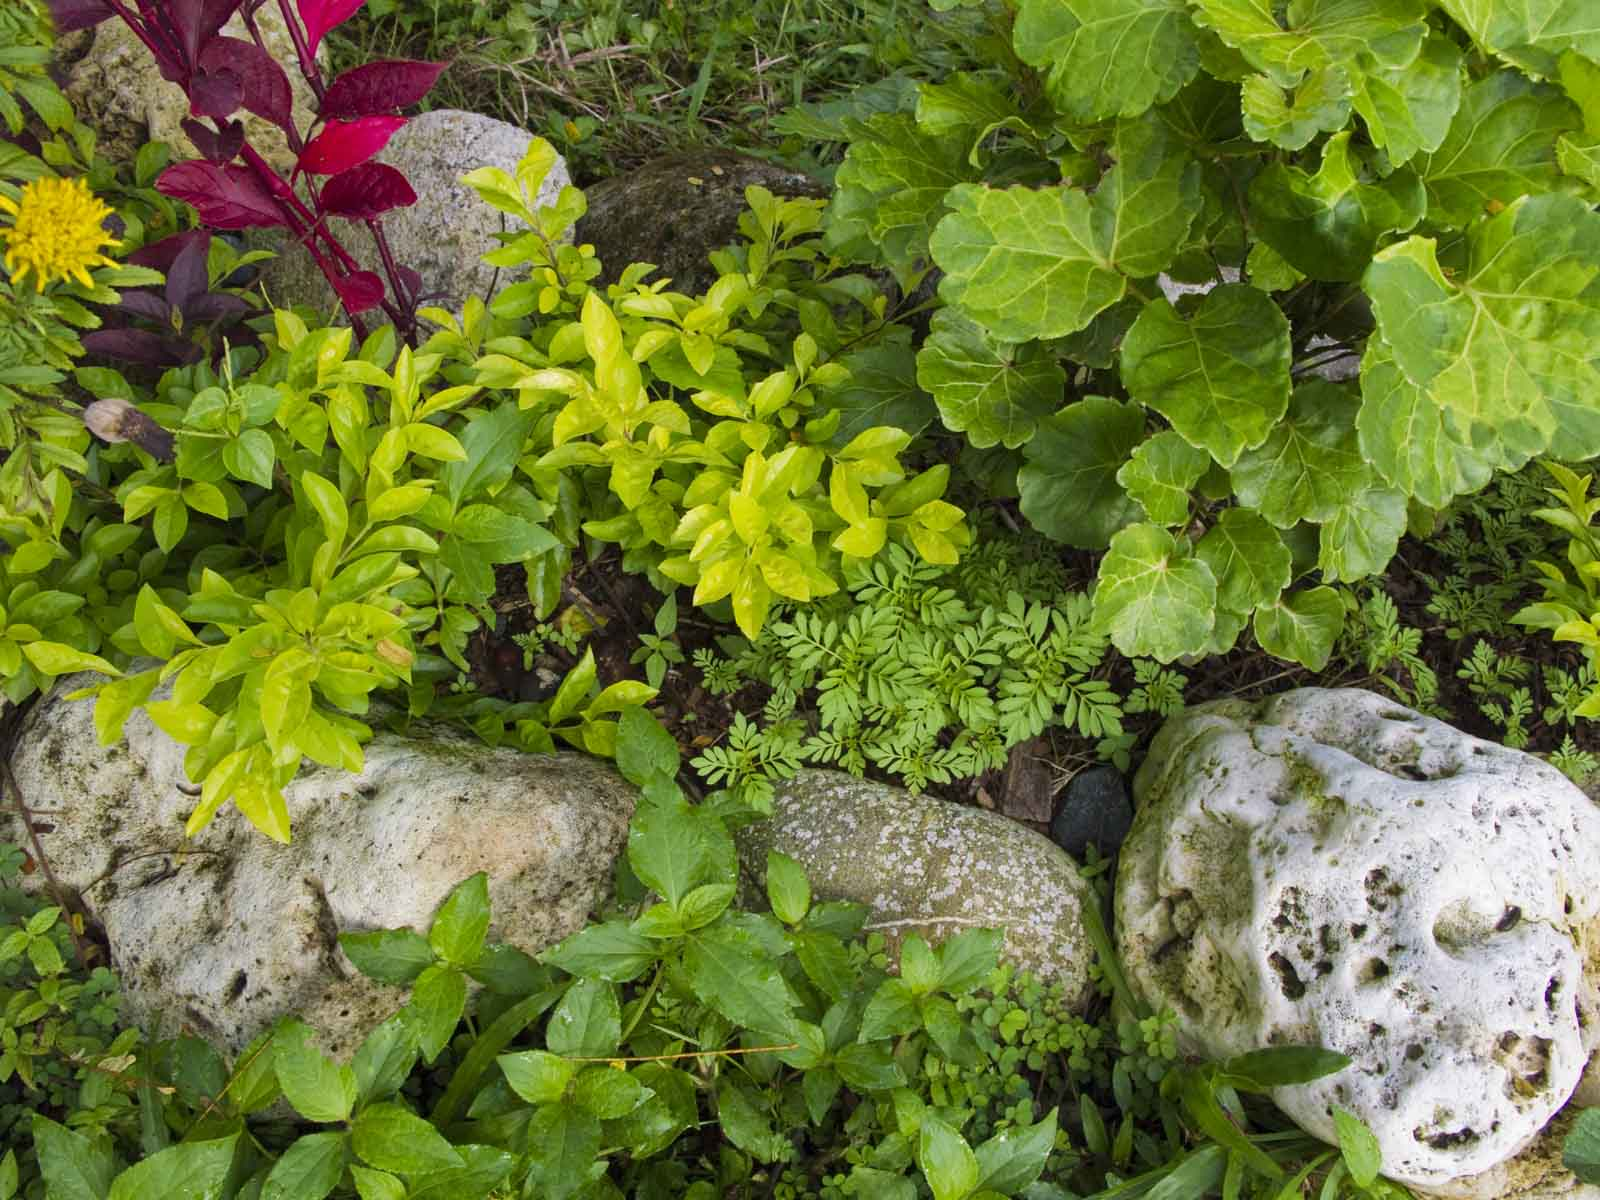 Landscaping Rocks Names : Garden rocks with names http messersmith wordpress tag